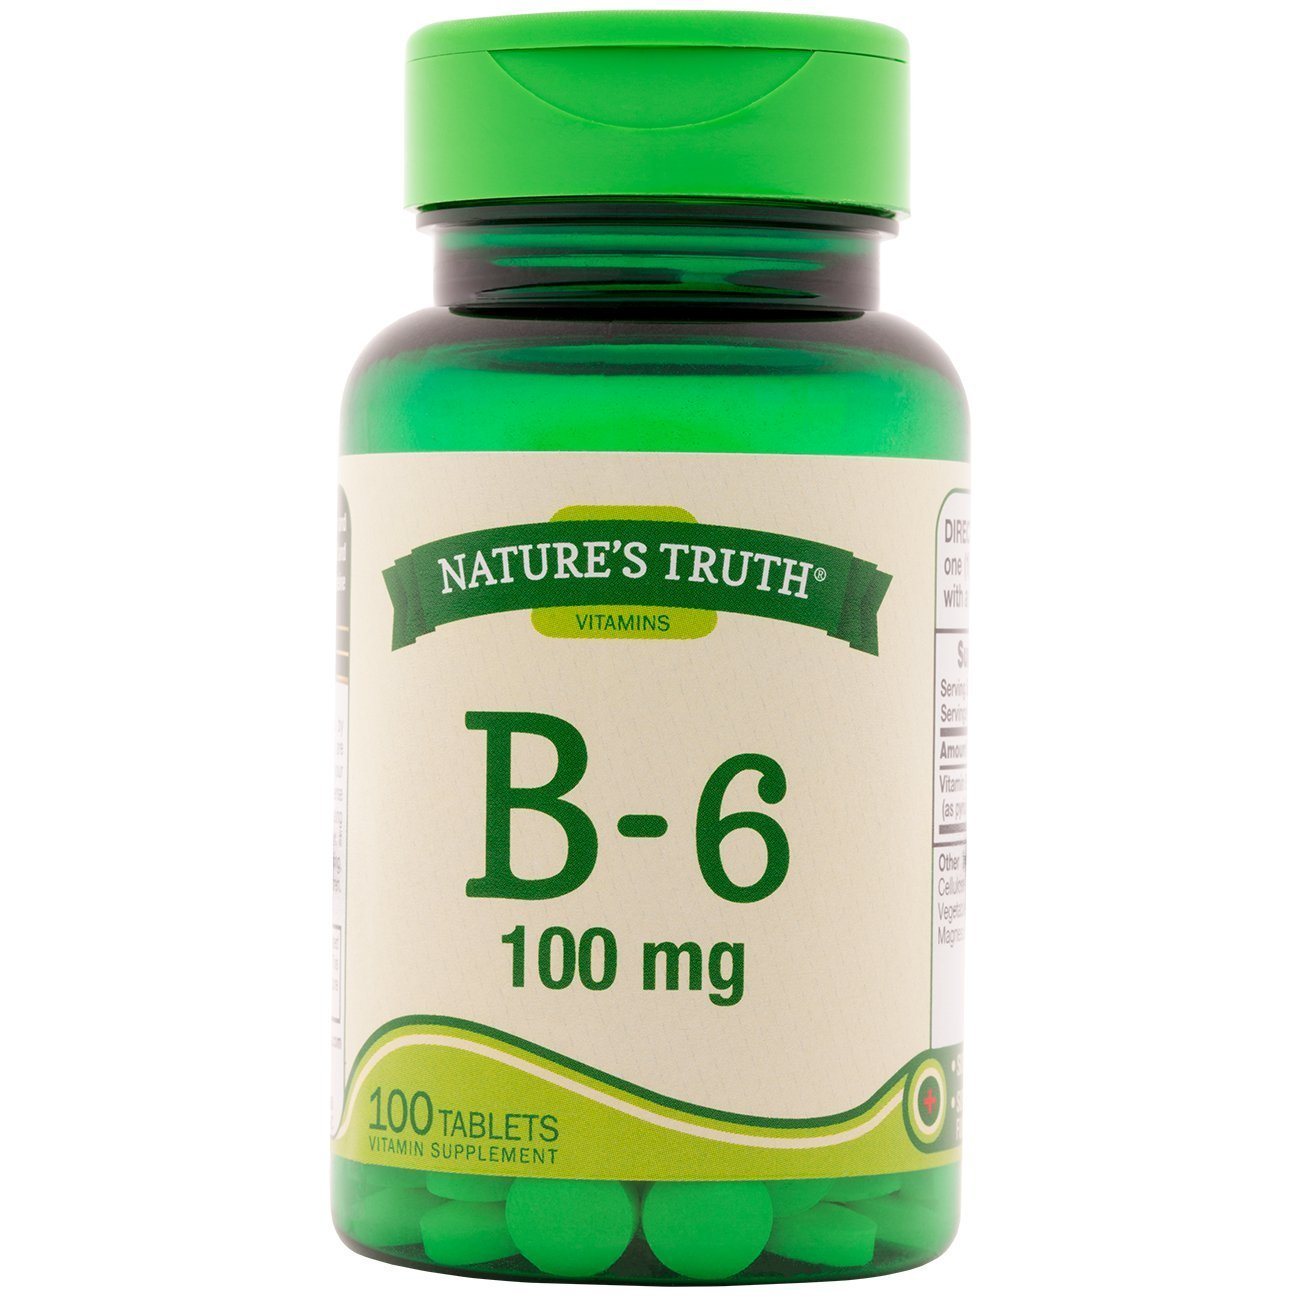 Nature's Truth B-6 100 mg - 100 Tablets, Pack of 6 by Nature's Truth